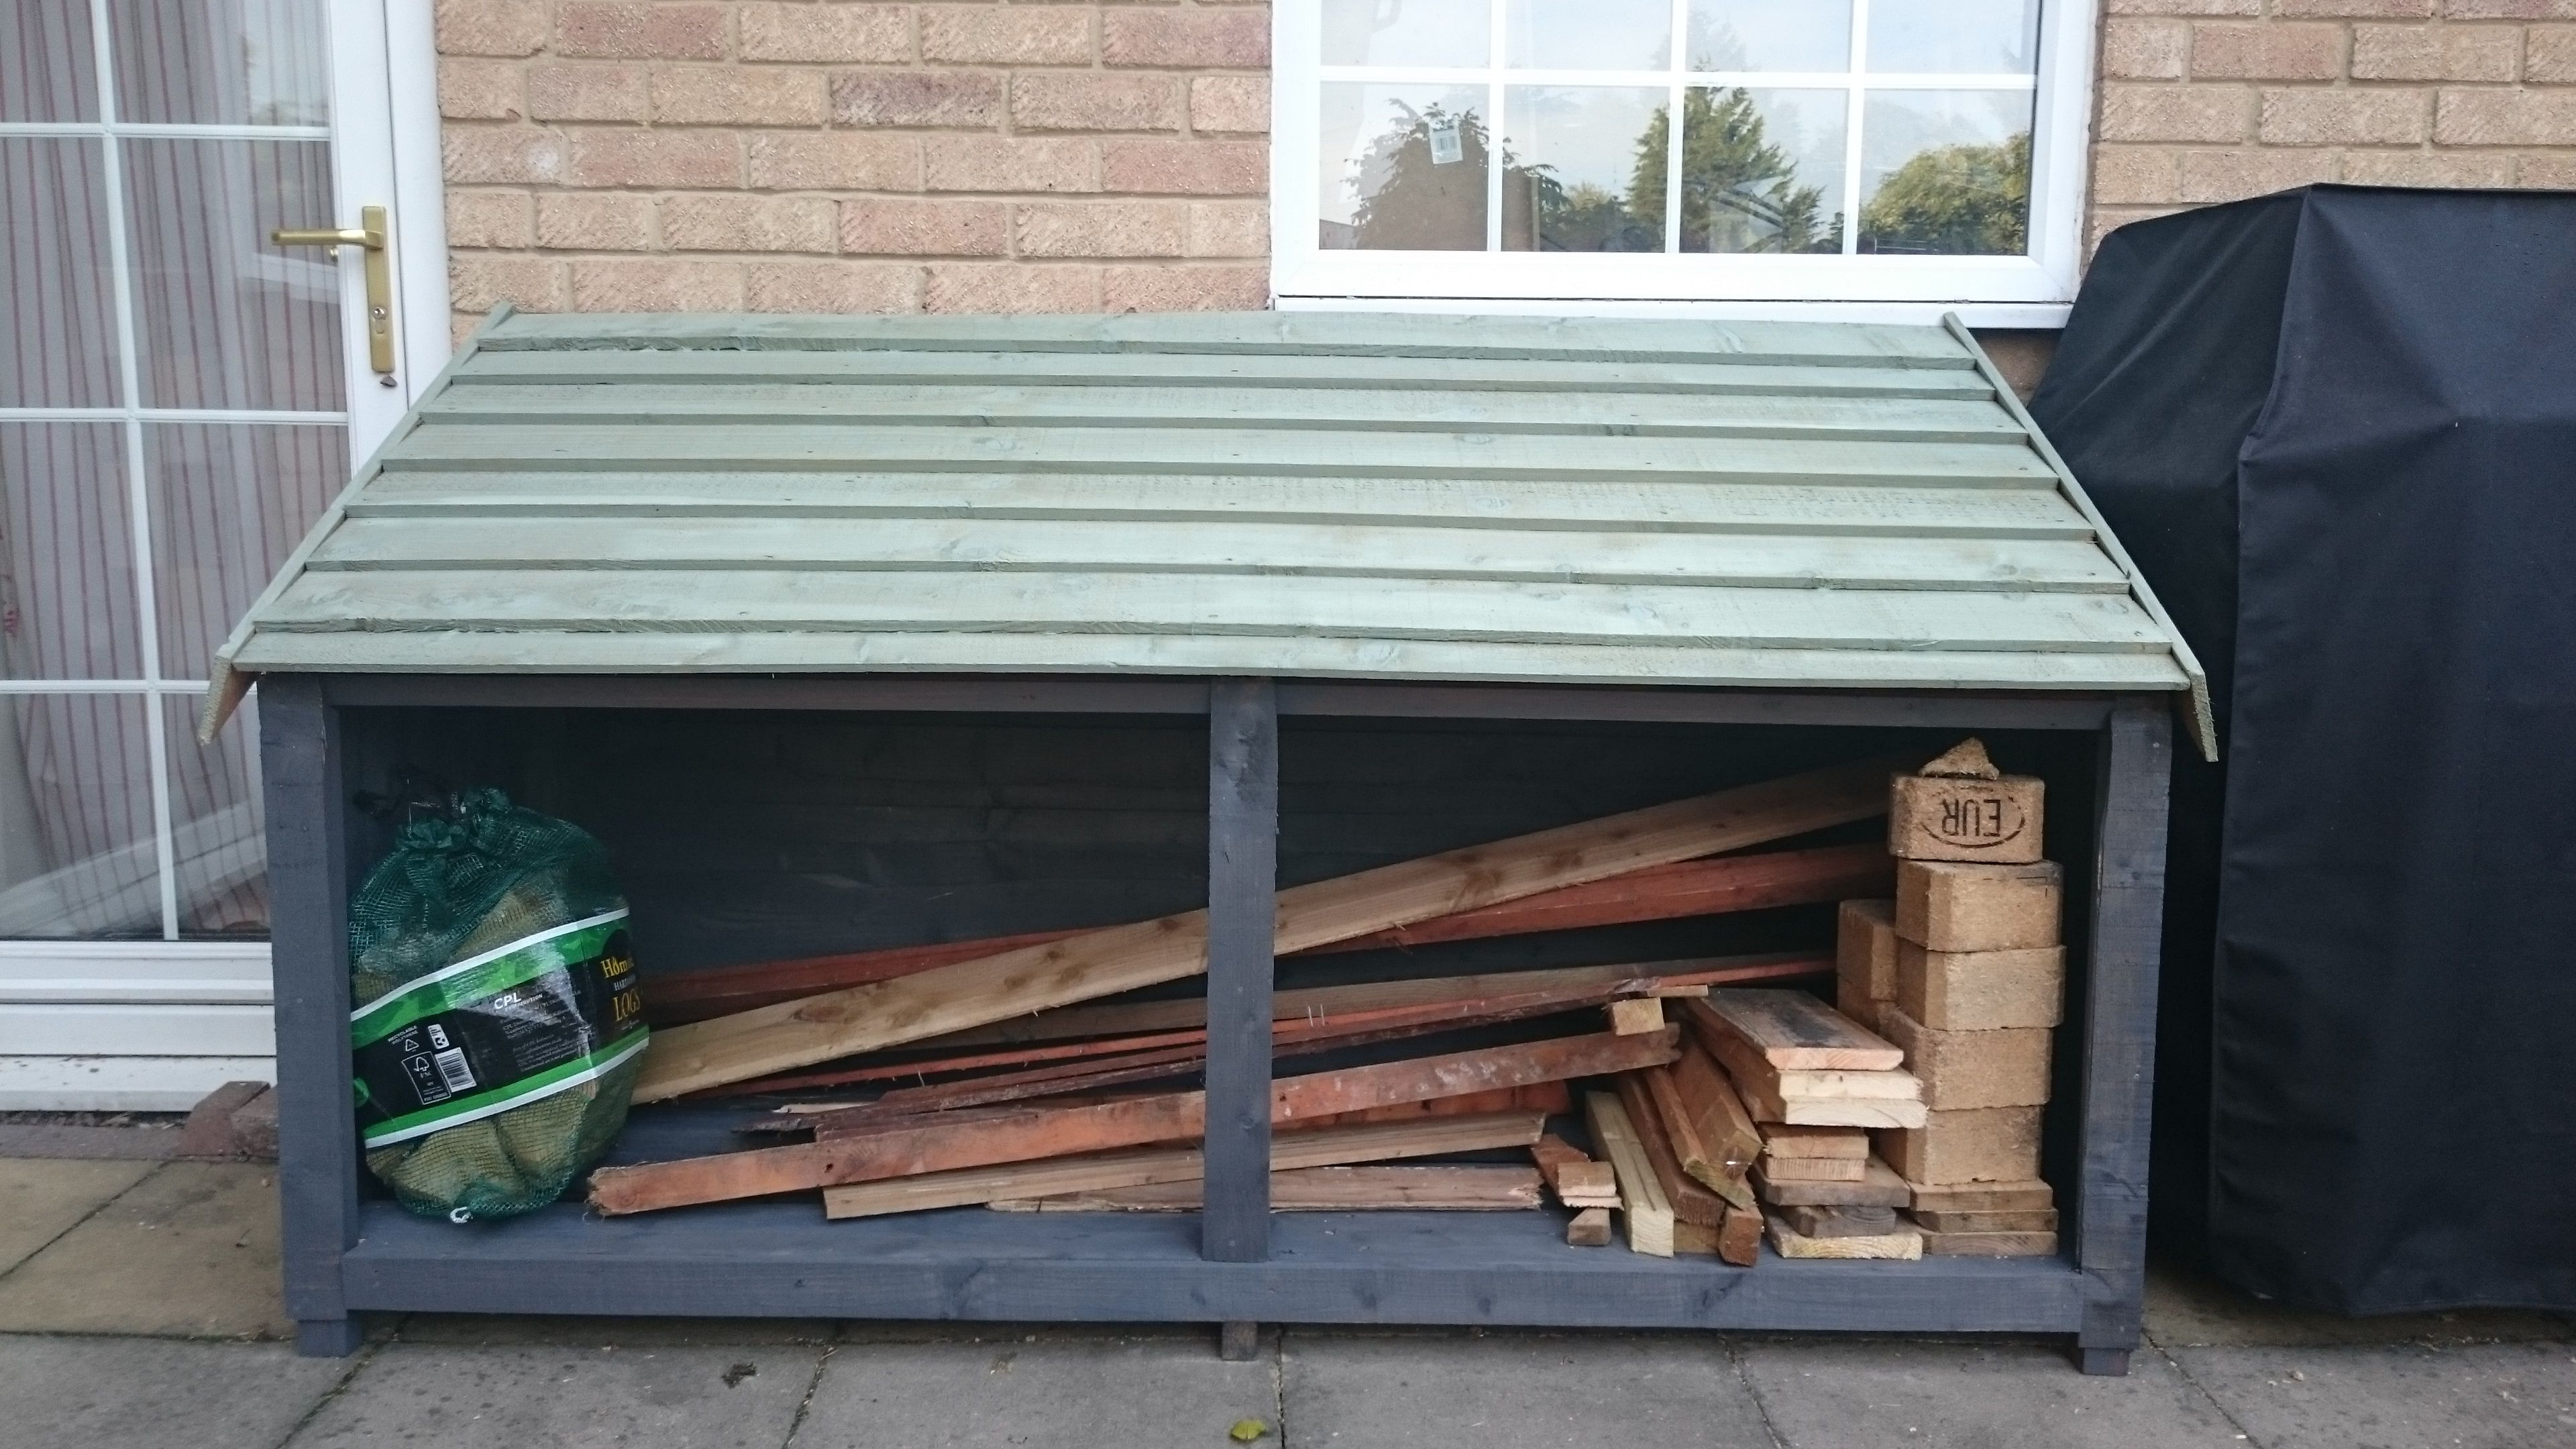 New wood store - built from unused fence panels and recycled pallets